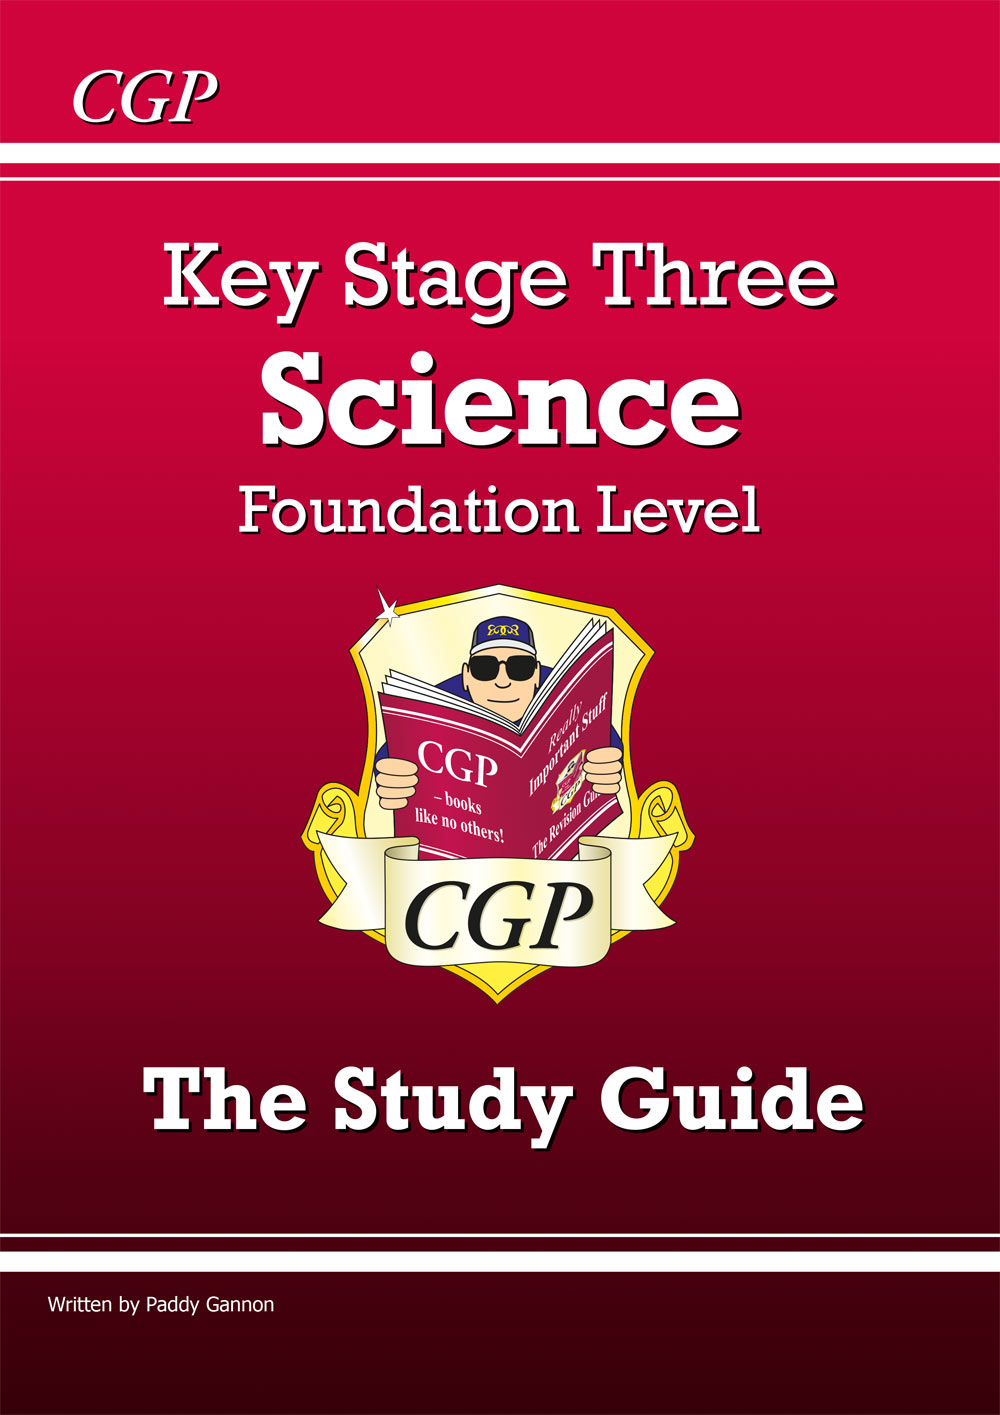 KS3 Science Study Guide - Foundation